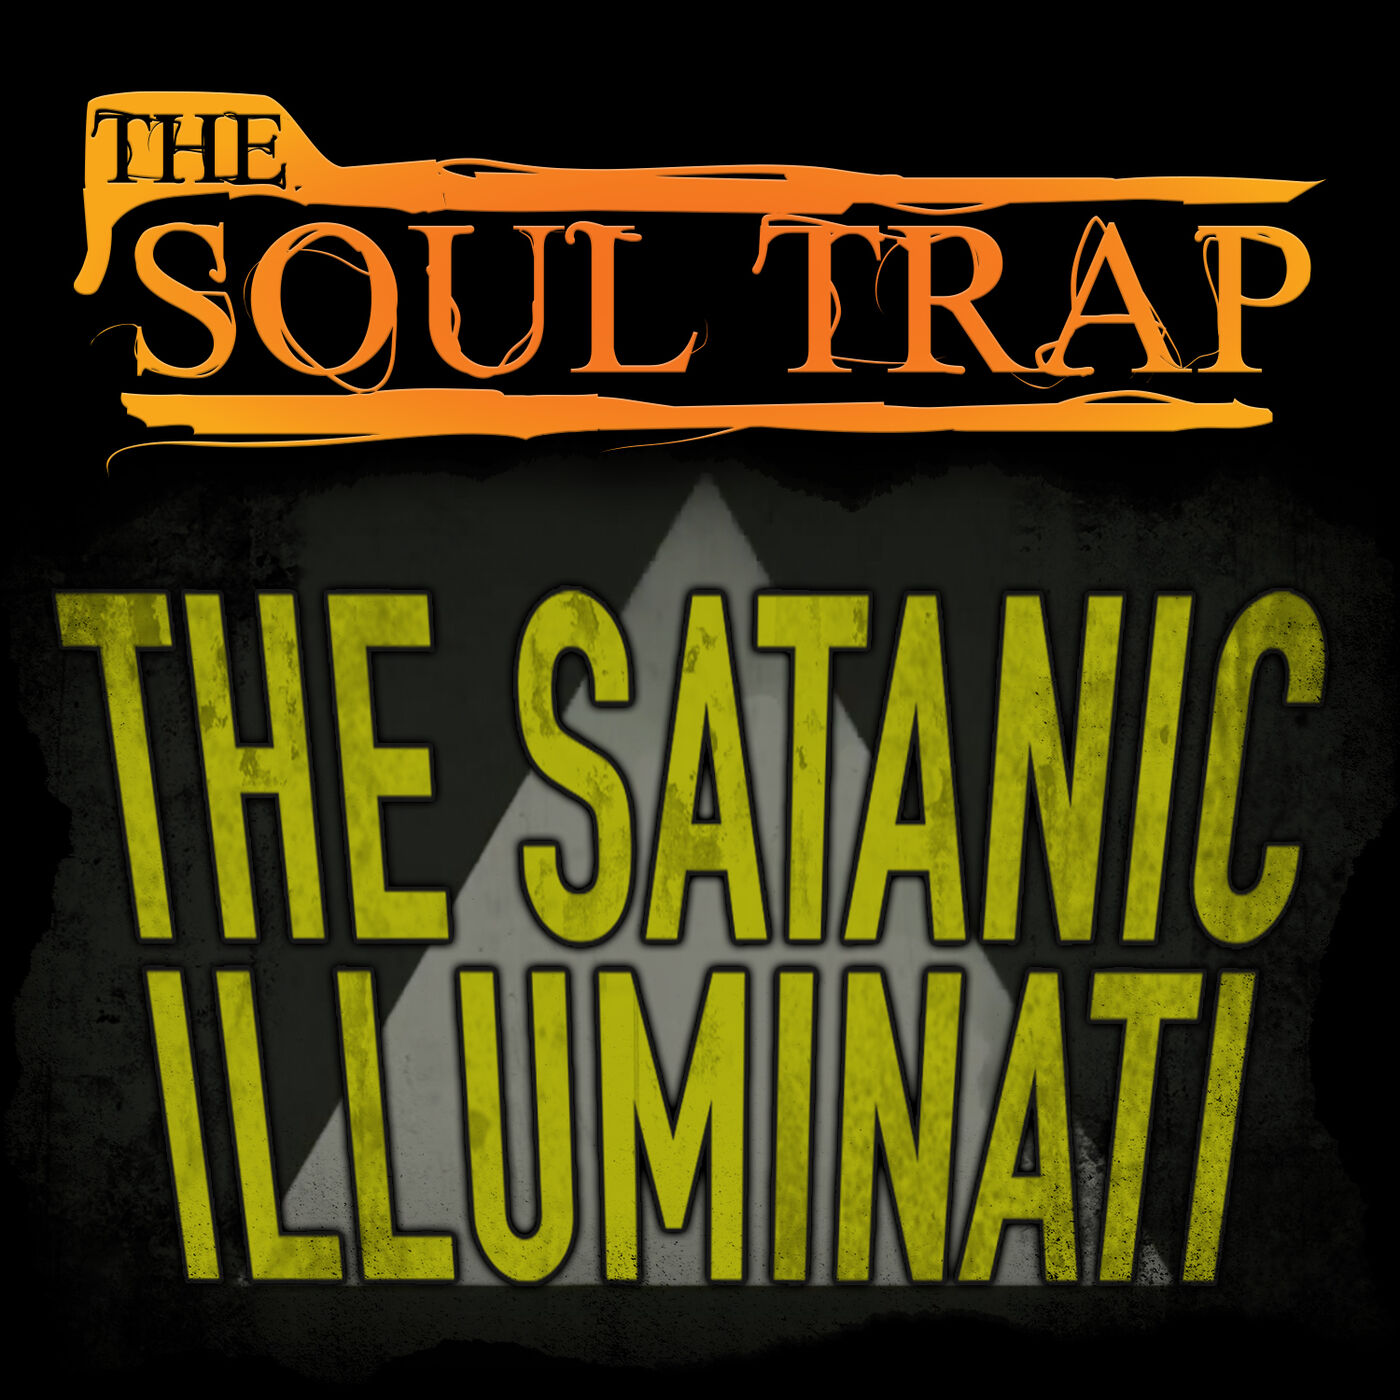 The Satanic Illuminati